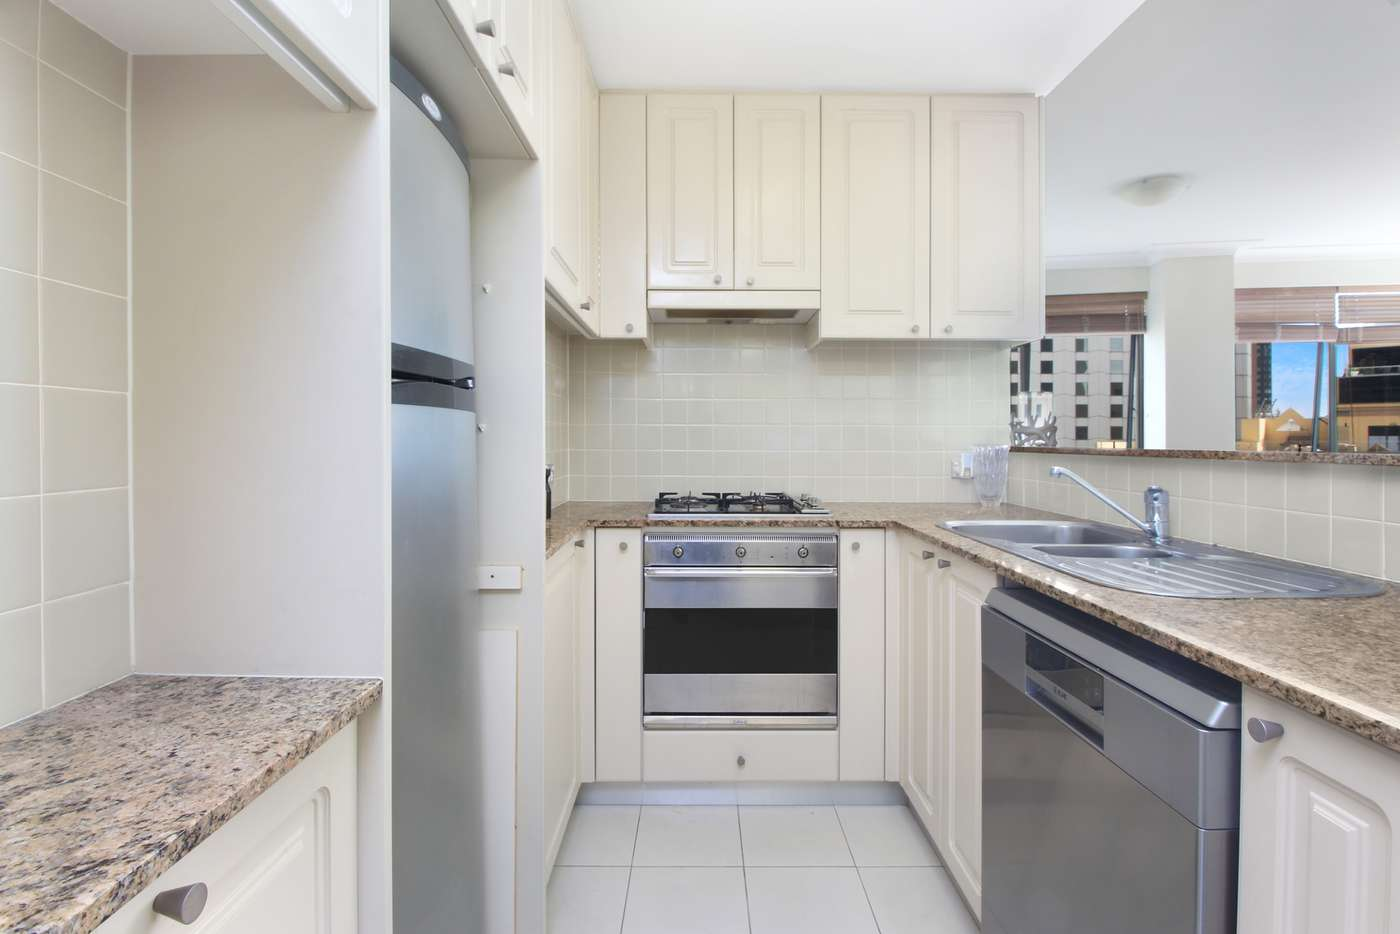 Sixth view of Homely apartment listing, 1410/38-42 Bridge Street, Sydney NSW 2000